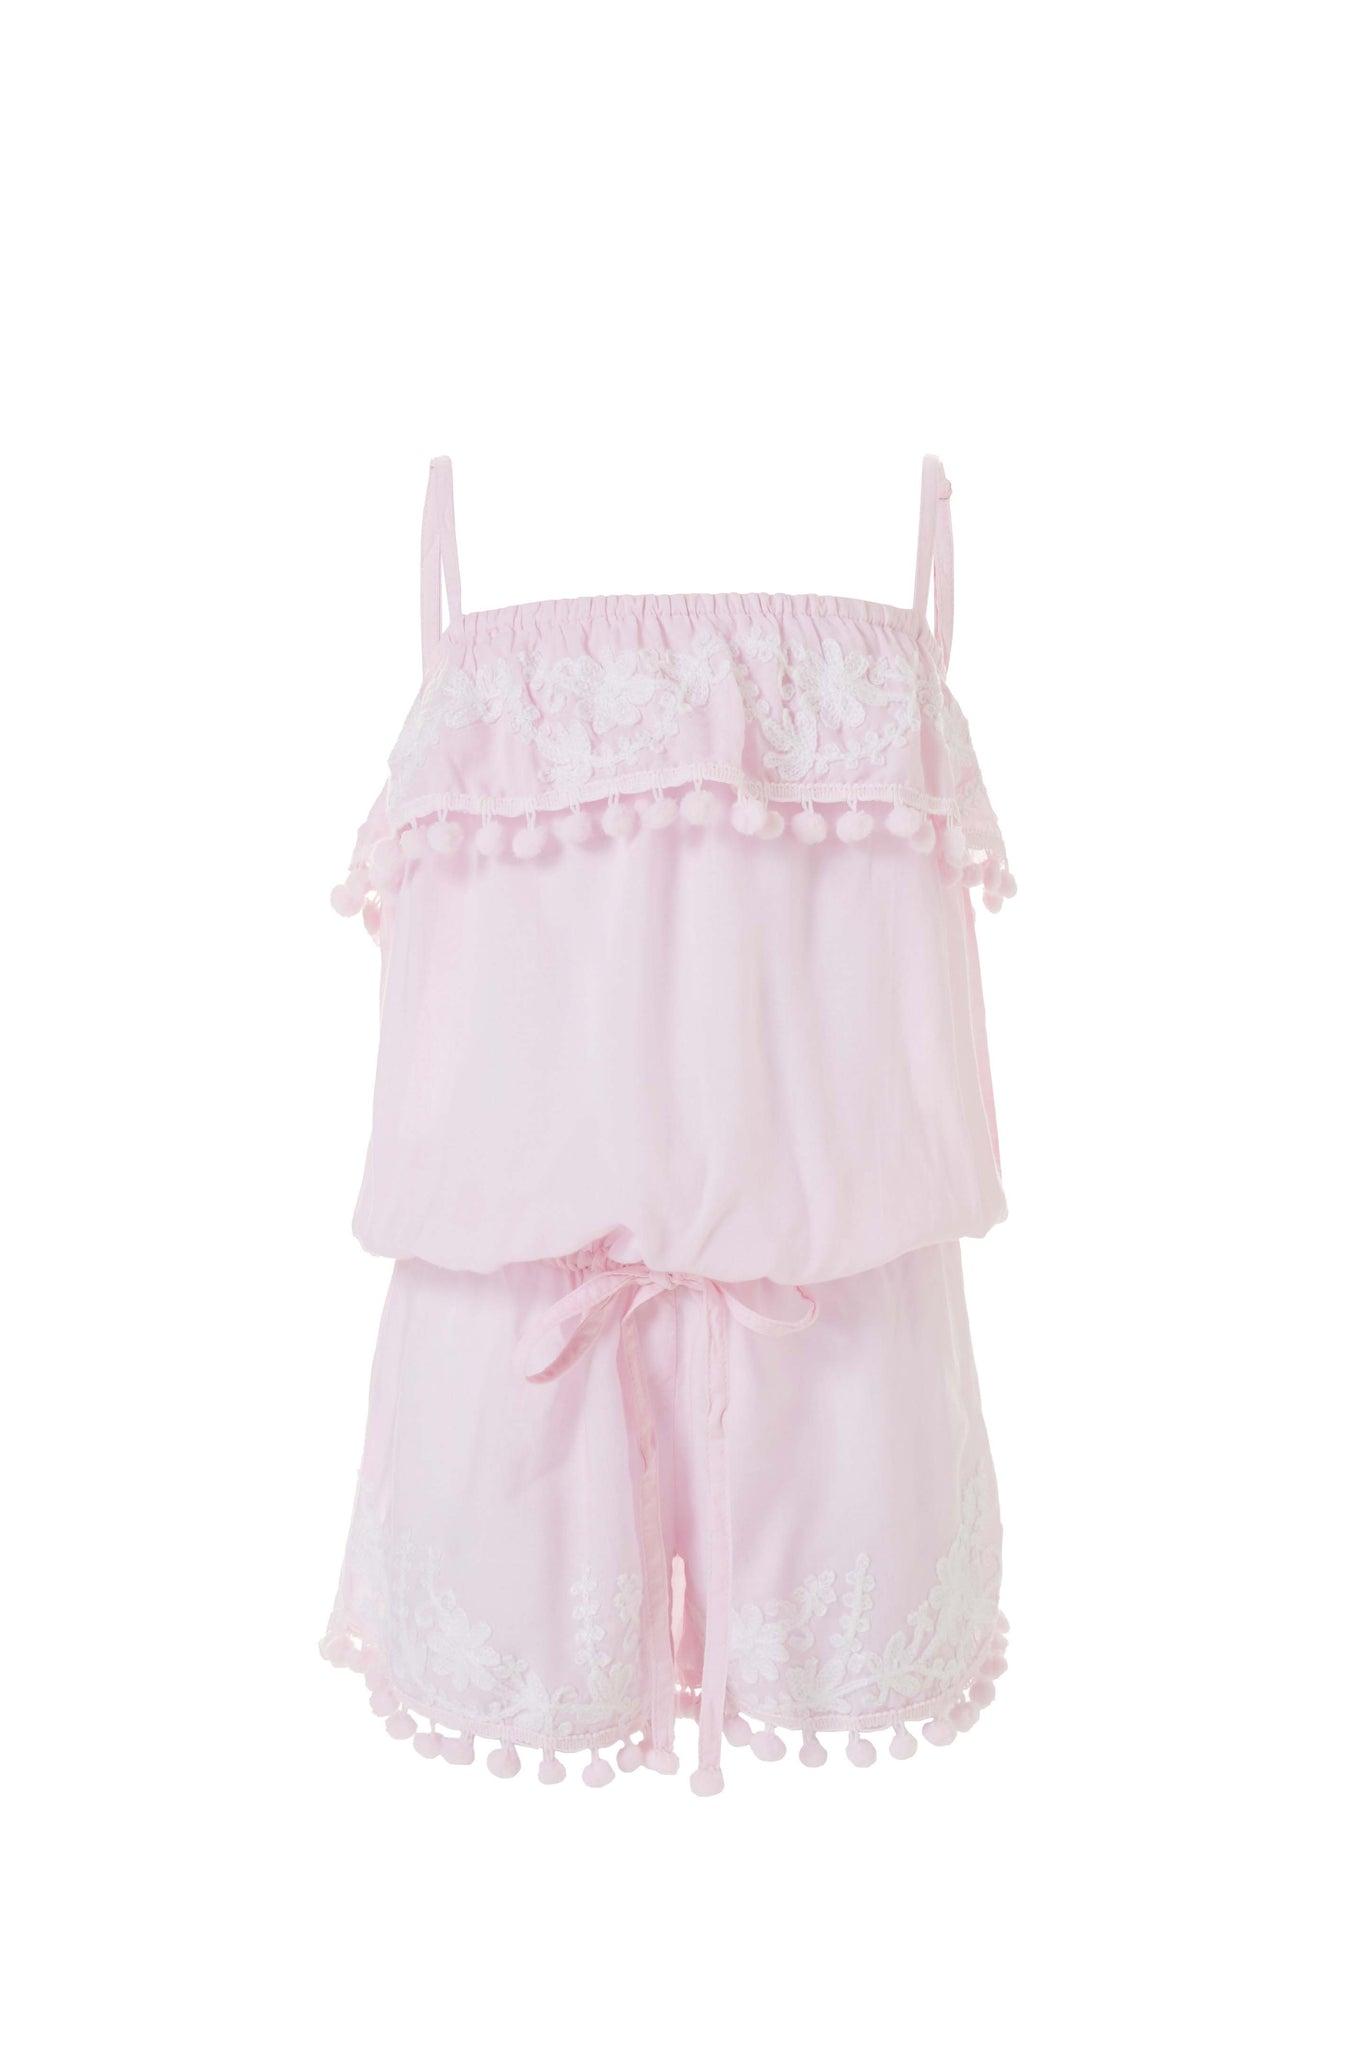 Baby Eisha Blush/White Embroidered Playsuit